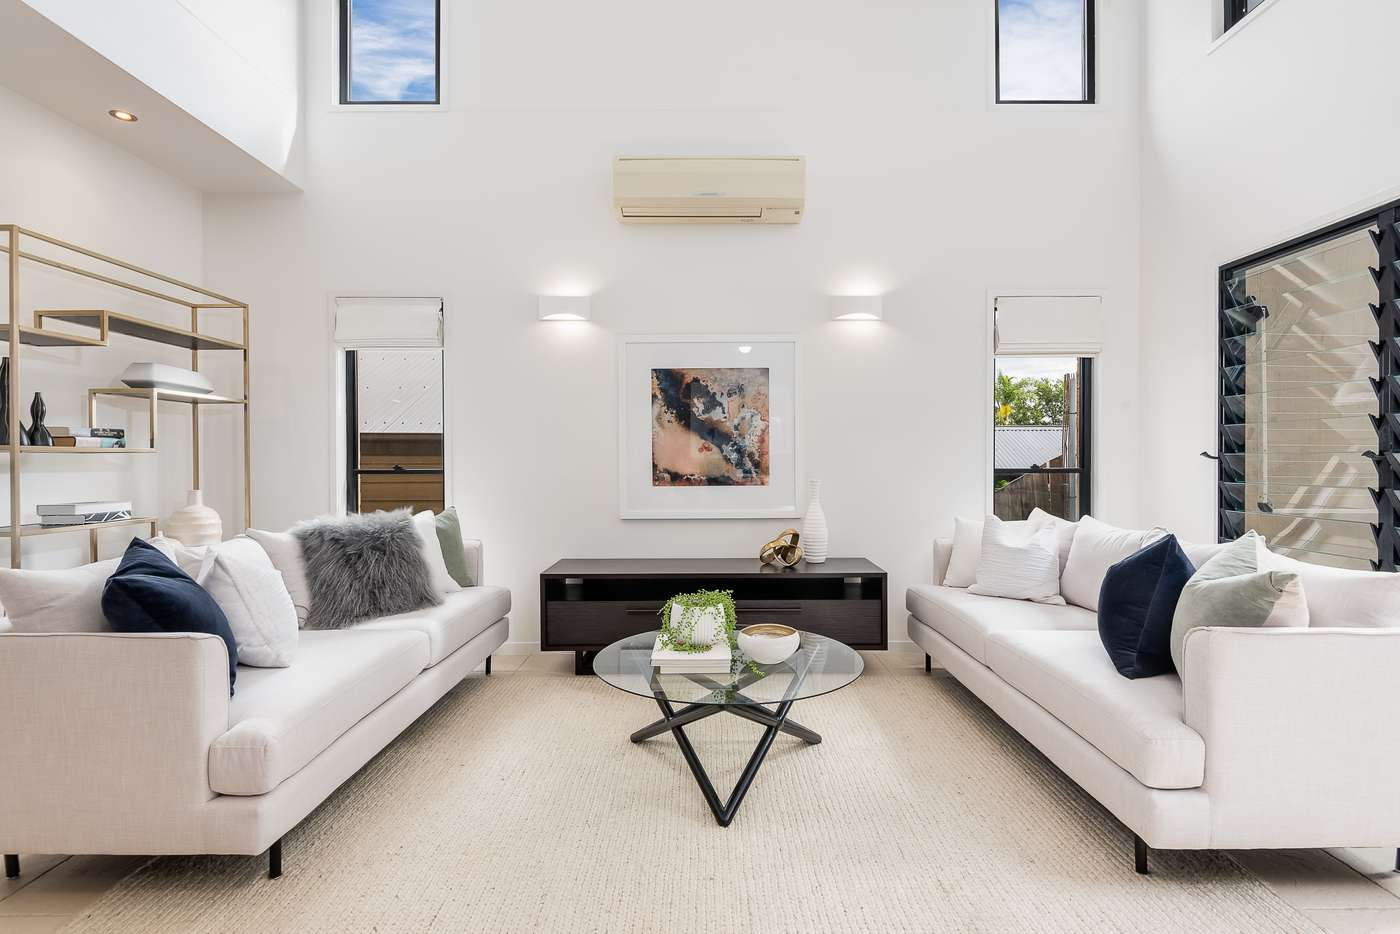 Sixth view of Homely house listing, 17 Cricket Street, Petrie Terrace QLD 4000